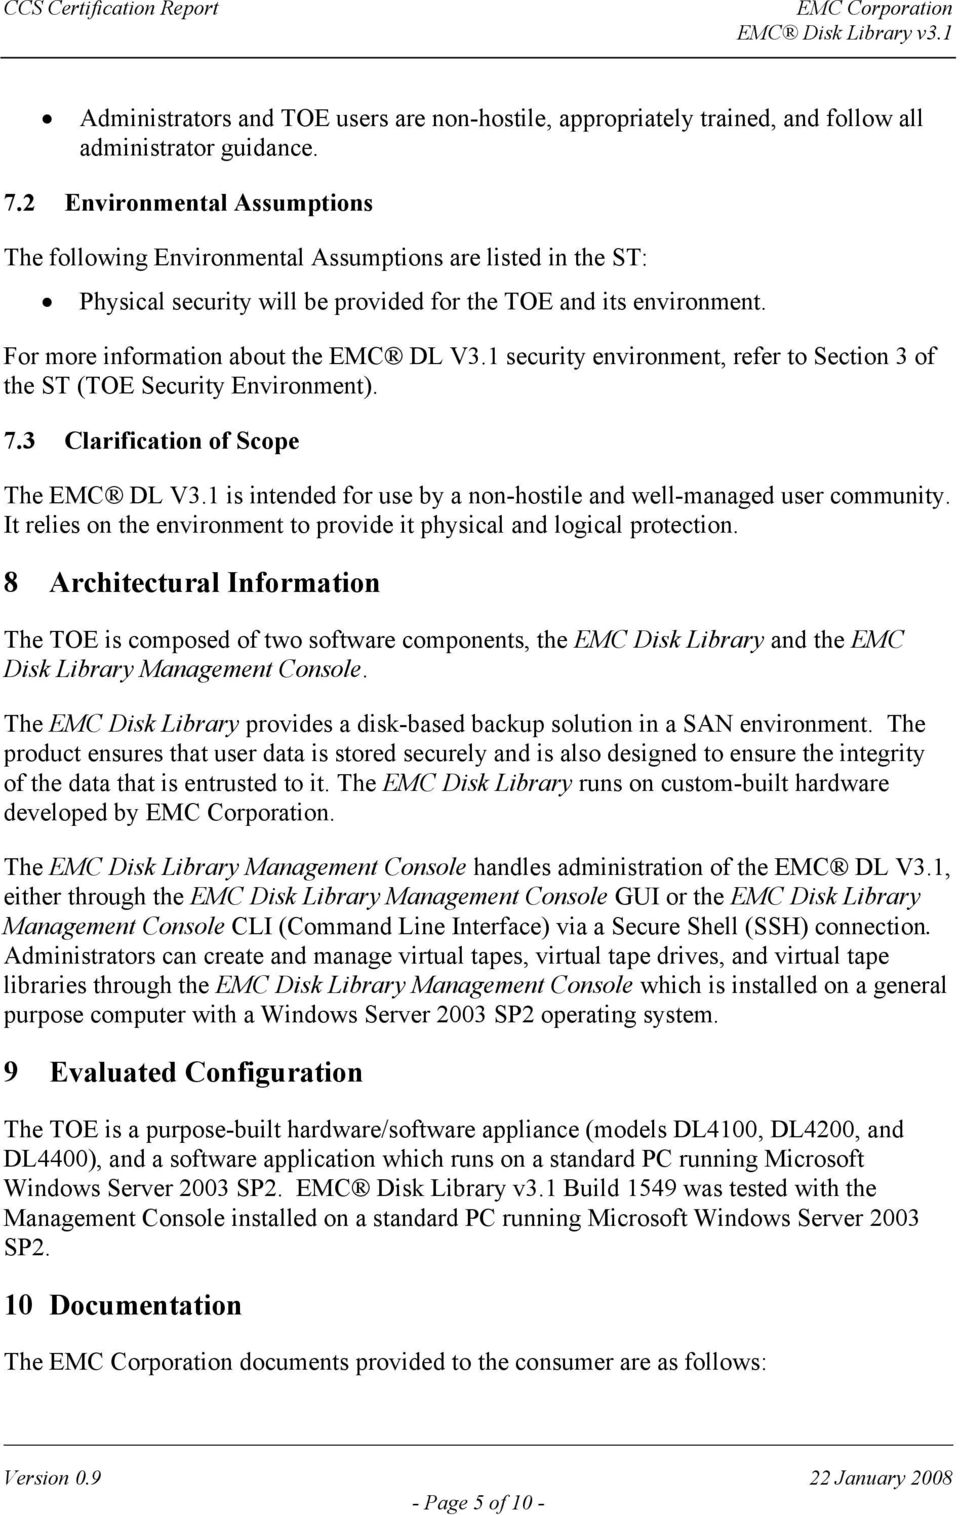 1 security environment, refer to Section 3 of the ST (TOE Security Environment). 7.3 Clarification of Scope The EMC DL V3.1 is intended for use by a non-hostile and well-managed user community.